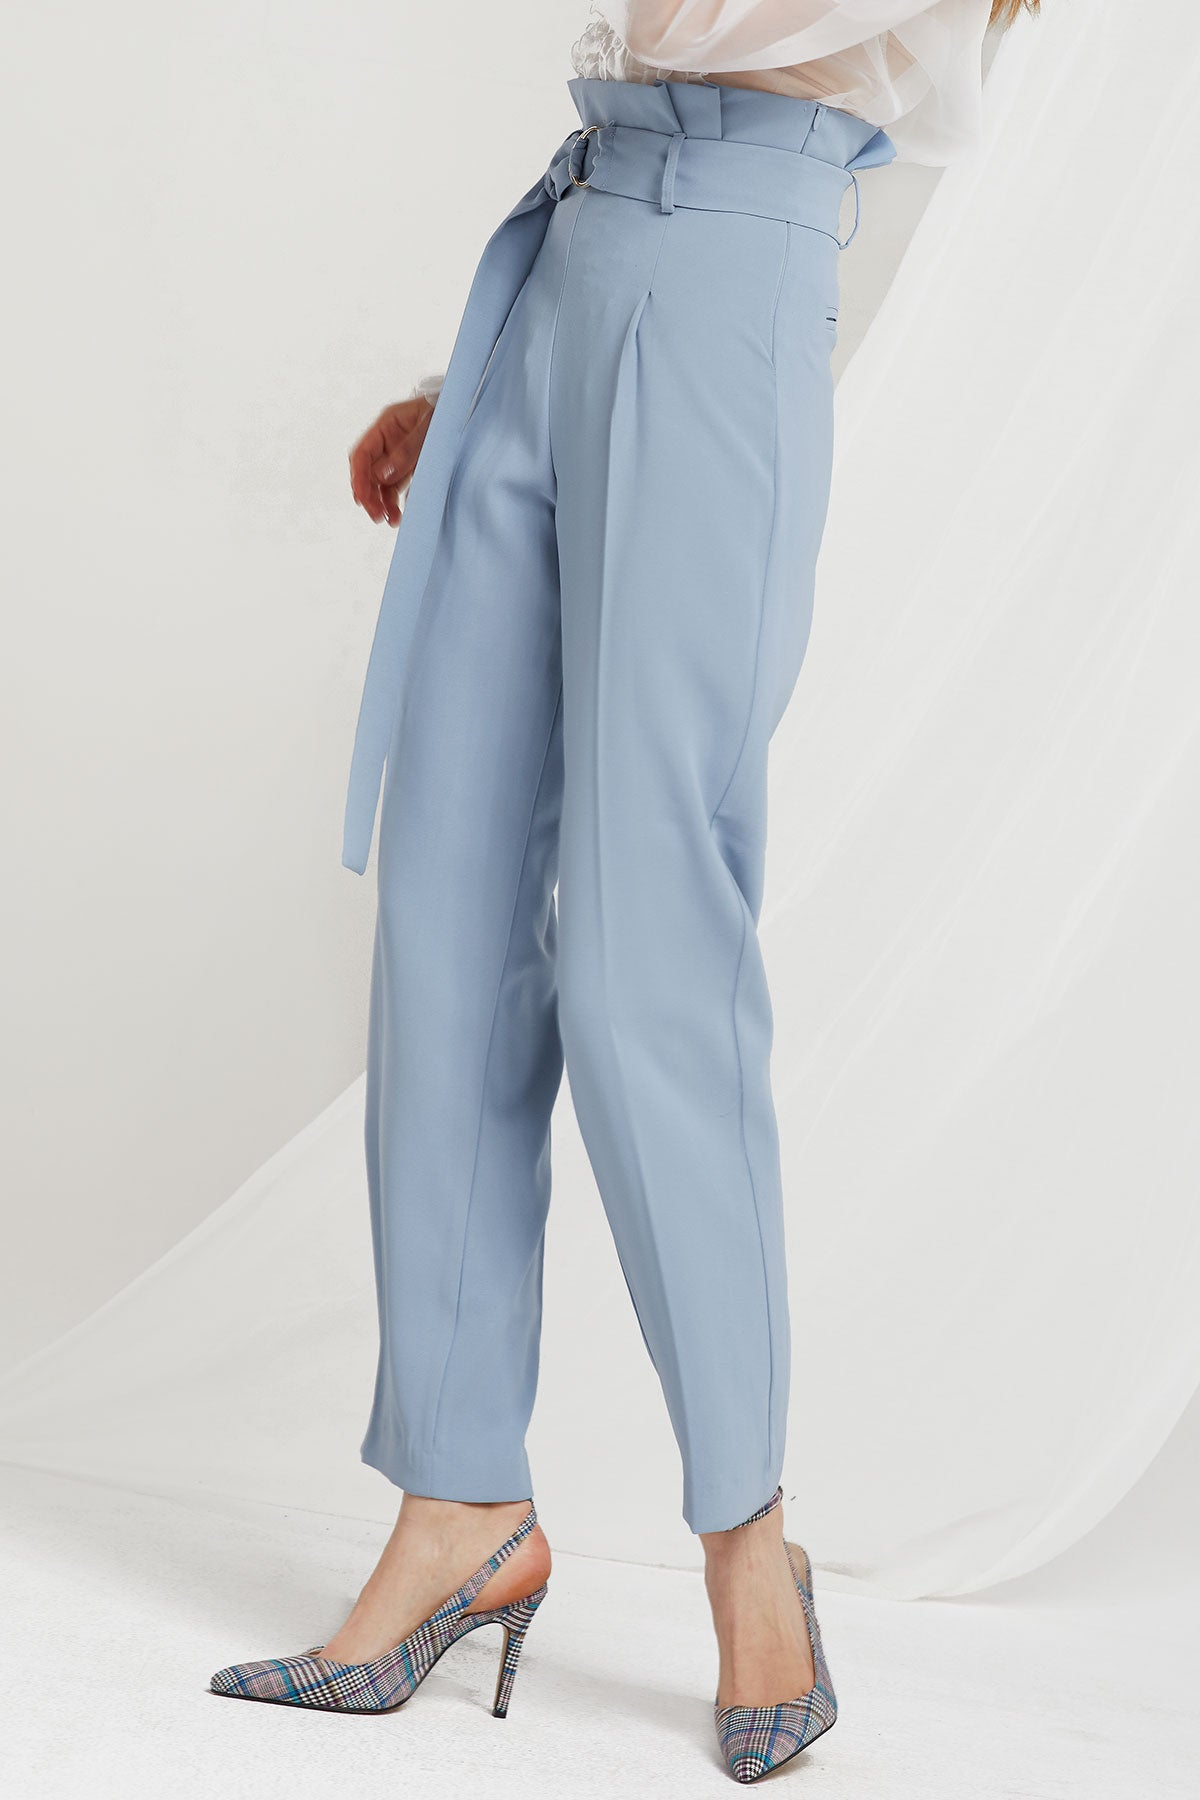 Nova High Waist Pants w/ Sash Belt (Pre-Order)